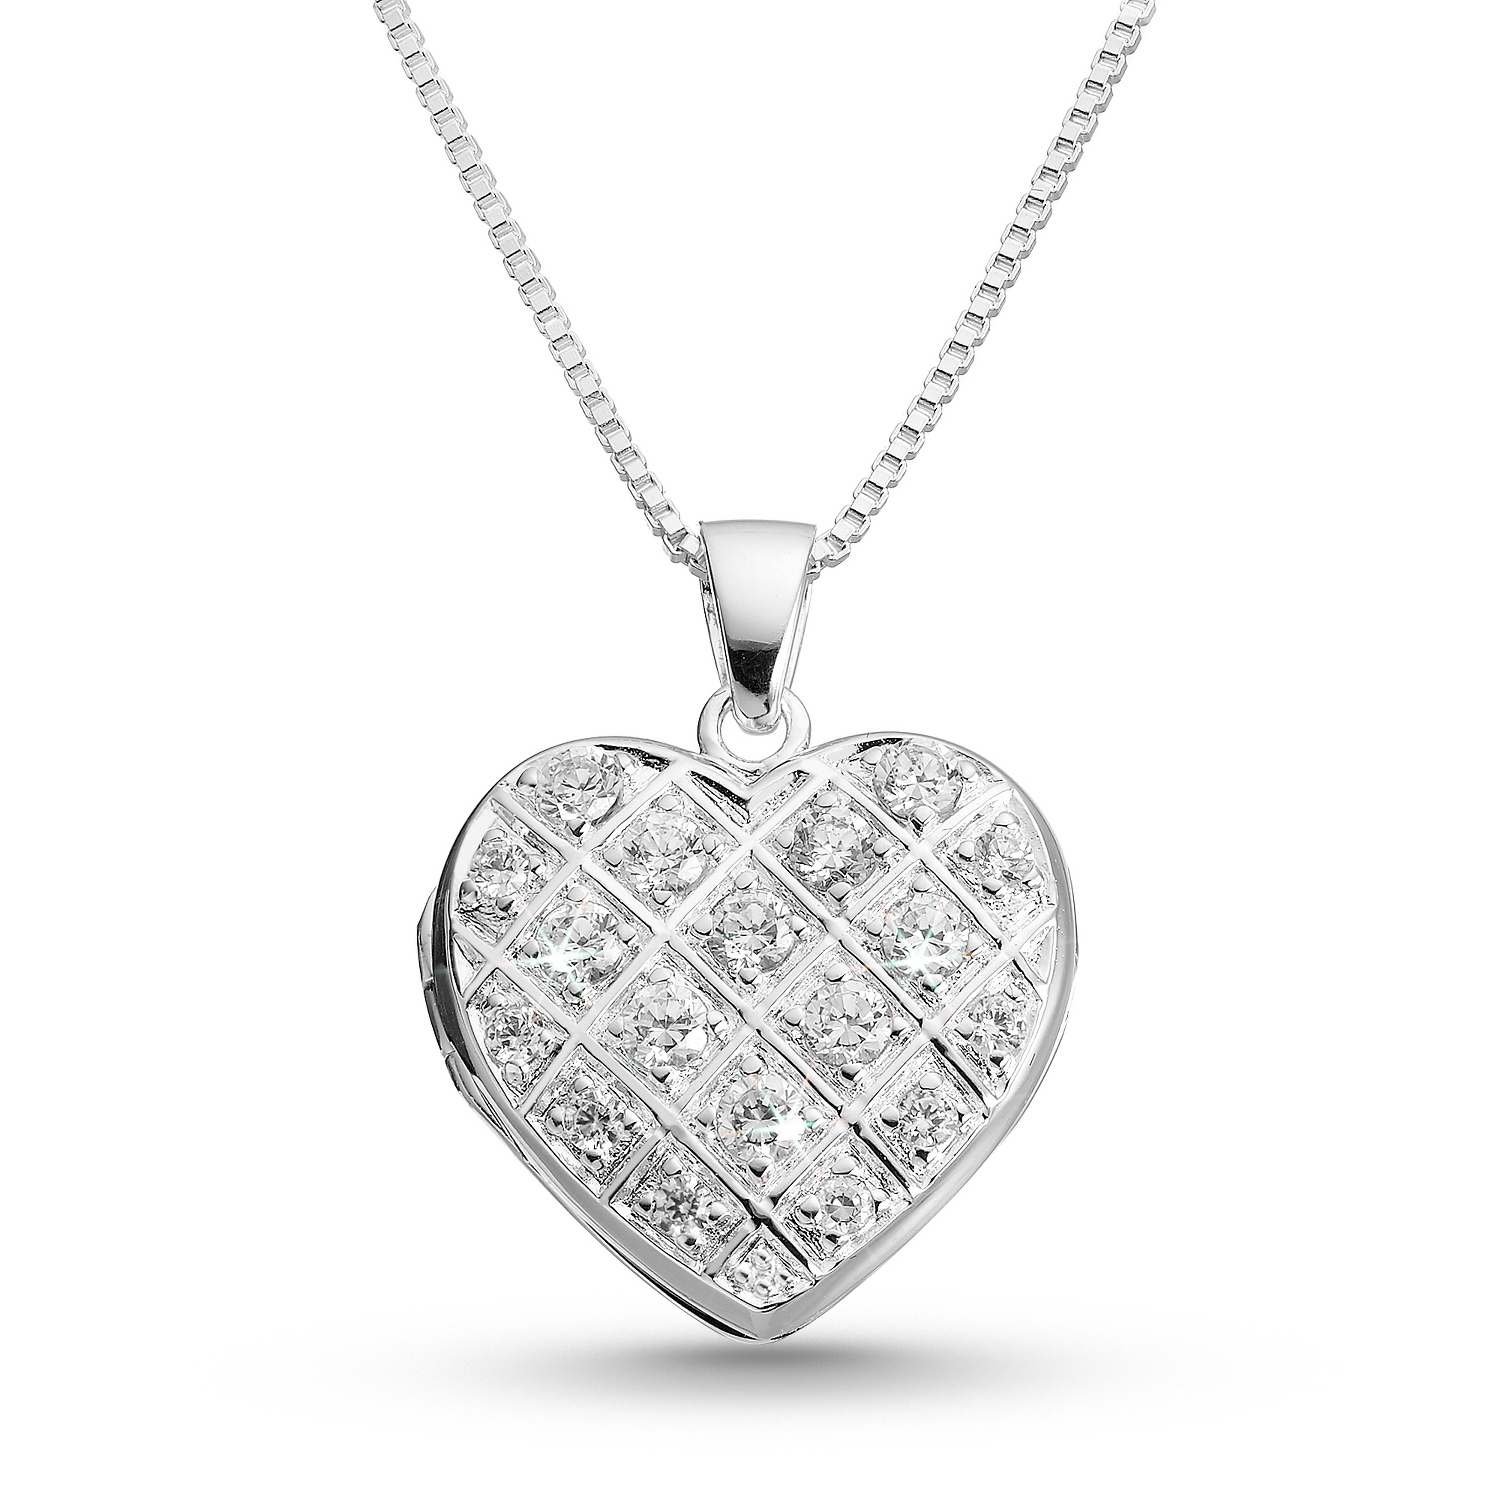 placed and memorial or over sealed signature male ashes suitable for image ella locket be under sterling images safely jewellery inside silver visible with sue designs can lockets your hair men a mens two s